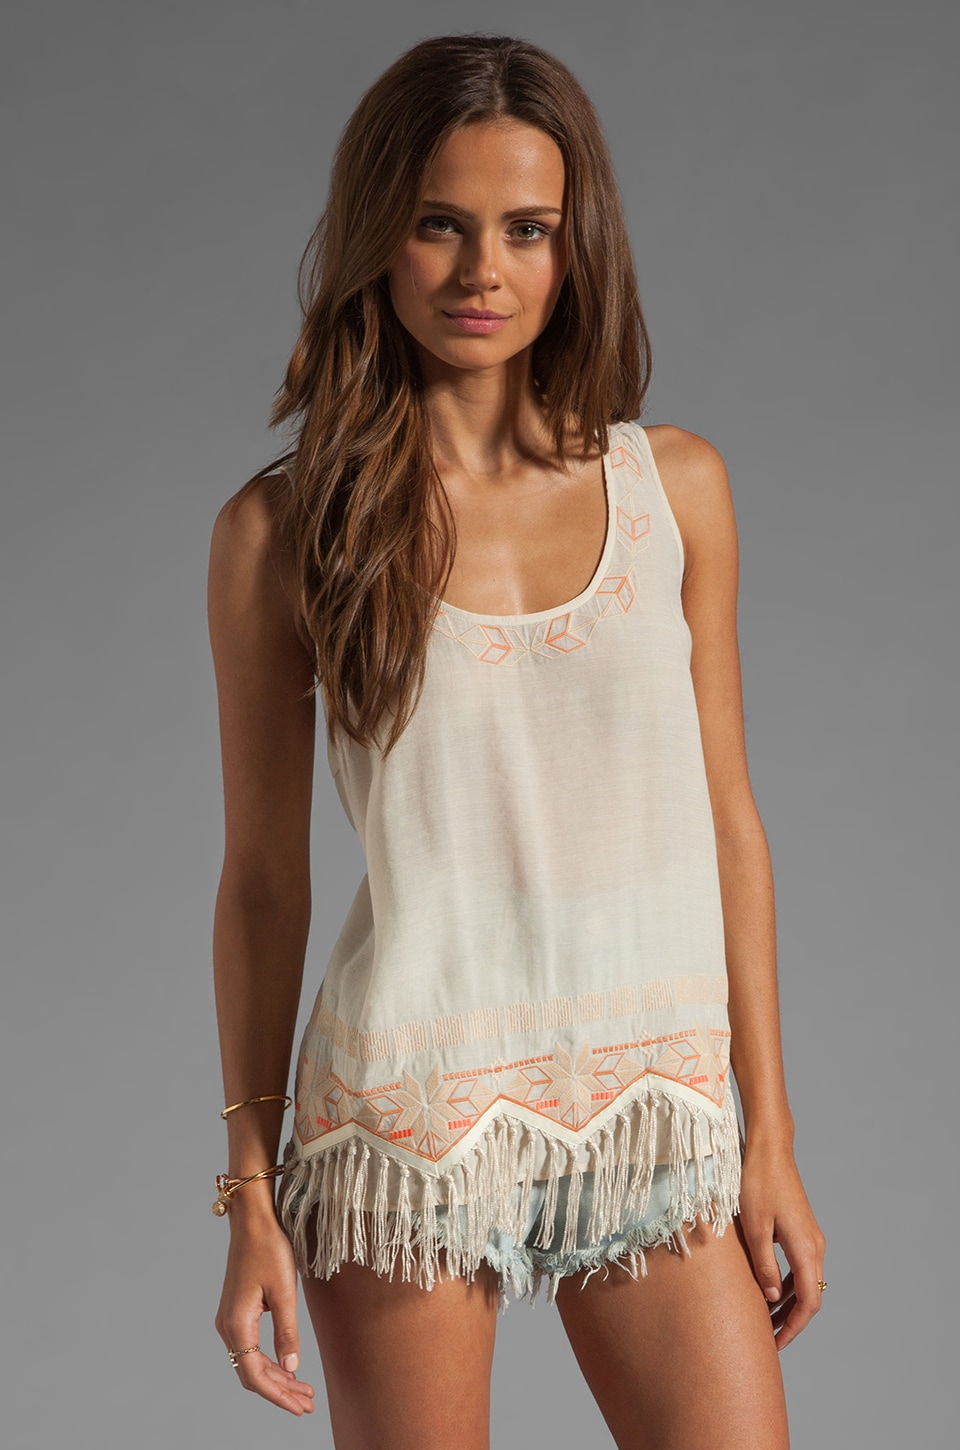 Wish Aztec Top in Arizona